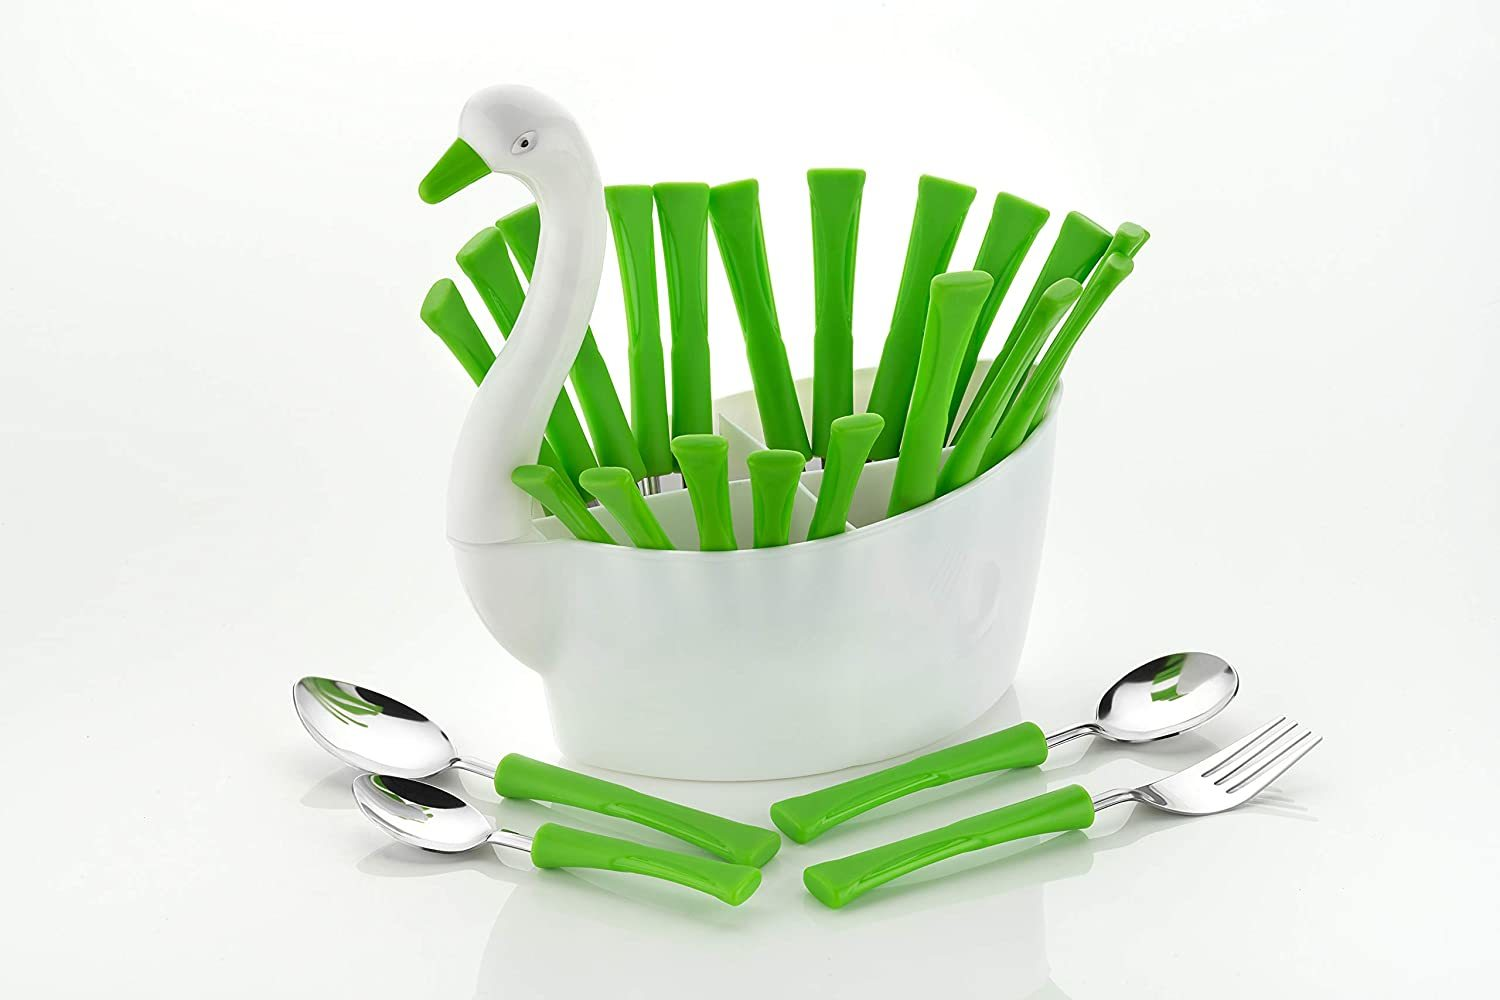 Premium Quality Duck Shape 24 pcs Cutlery Set for Kitchen and Dining Table